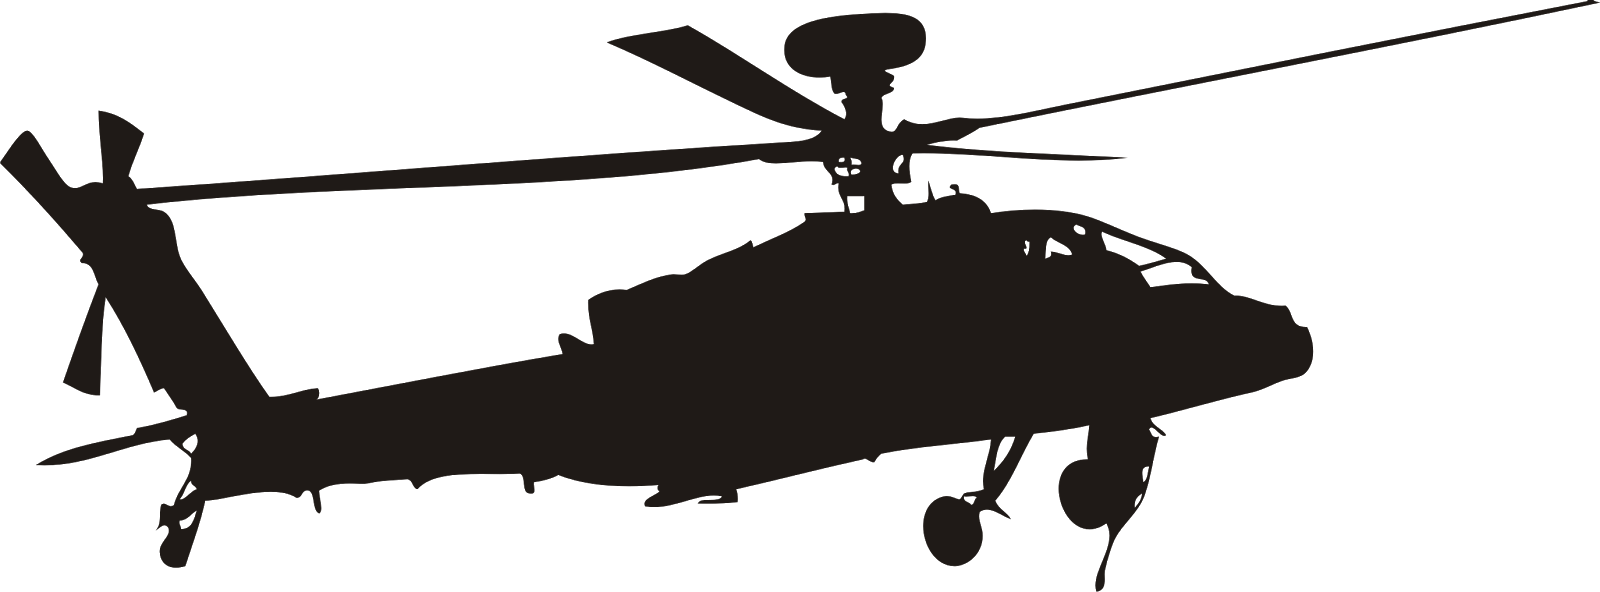 apache helicopter sd with Download Gambar Helikopter Tempur Dan on Coloring Pages Of Helicopters furthermore Clip 8072947 Stock Footage Stating Base Uss Ponce Us Army And Navy A Ah D Apache Helicopter At A Conduct Training in addition Clip 7123417 Stock Footage Huey Helicopter Banks Left furthermore 340 in addition Walkera dragonfly hm 060 7 2153247 2191570.